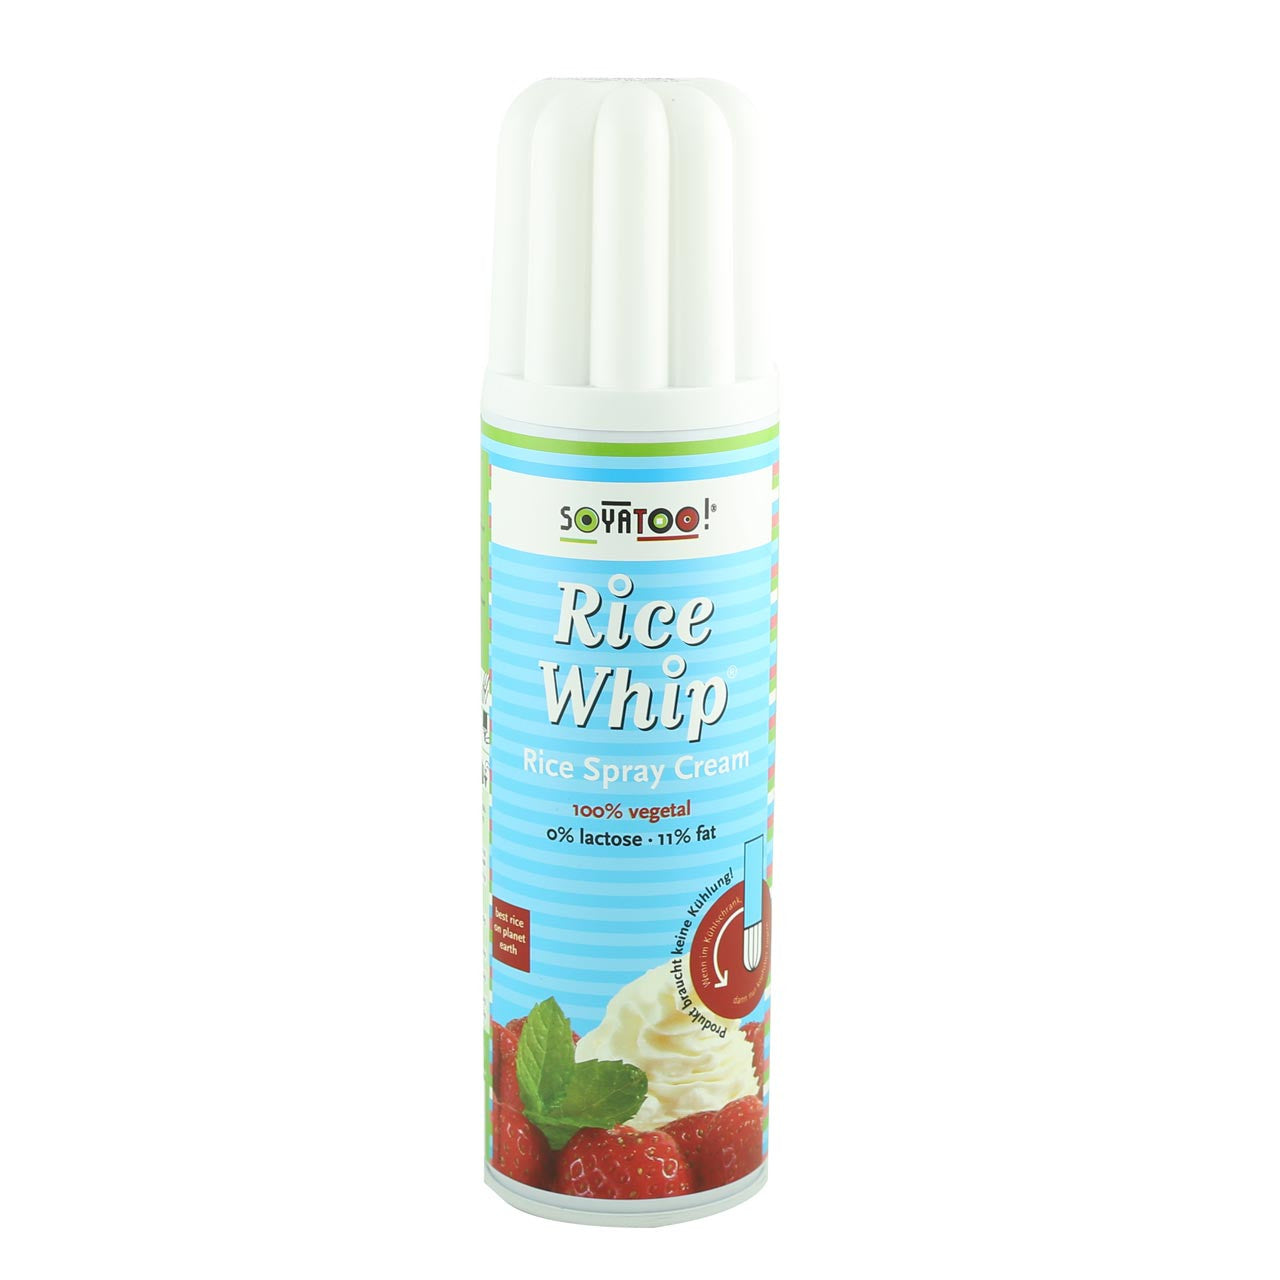 Soyatoo Rice Whip Spray Cream